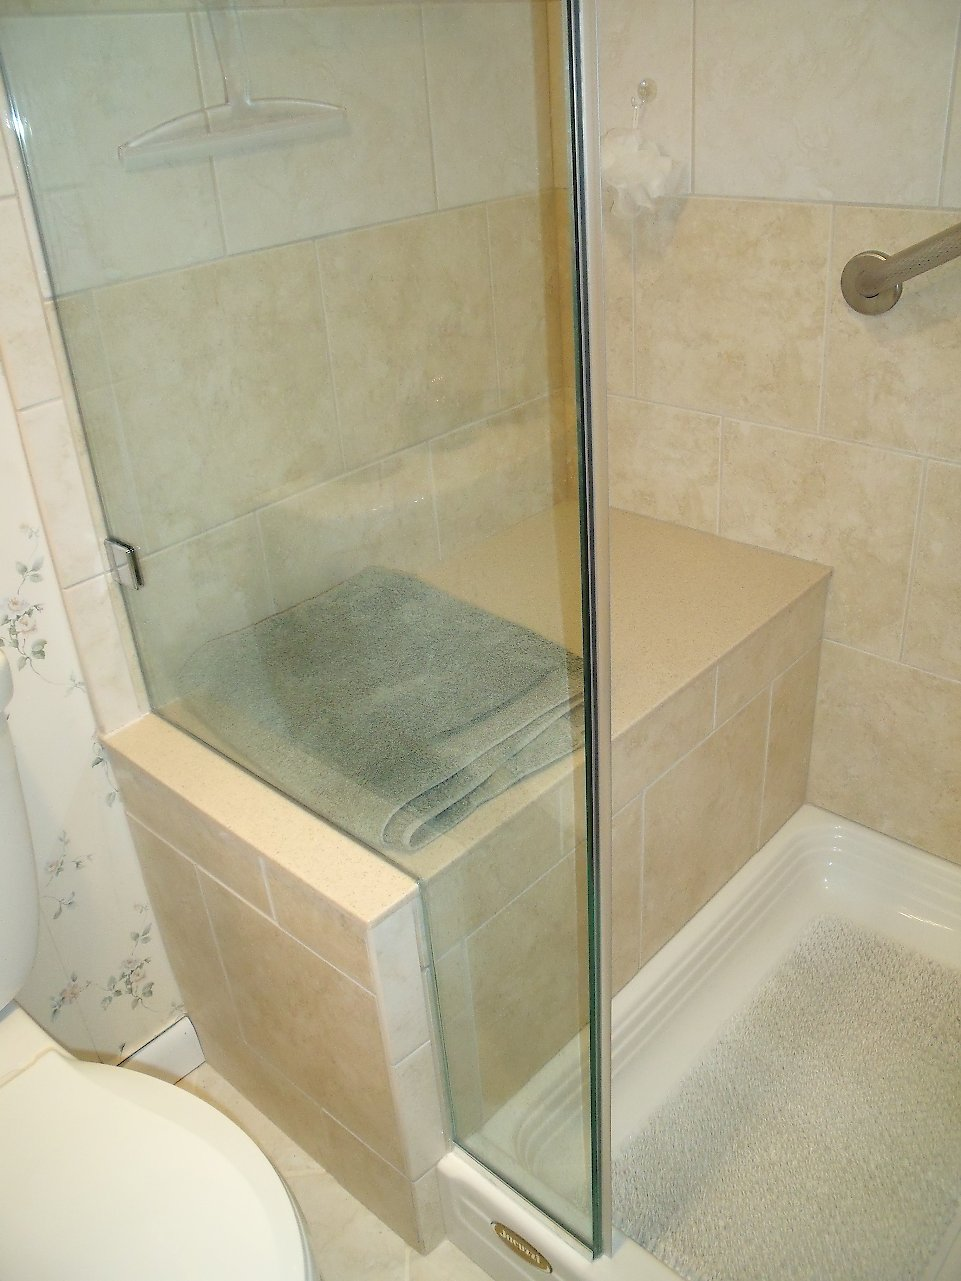 Clear And Classy categorized under Transitional Bathroom Portfolio.